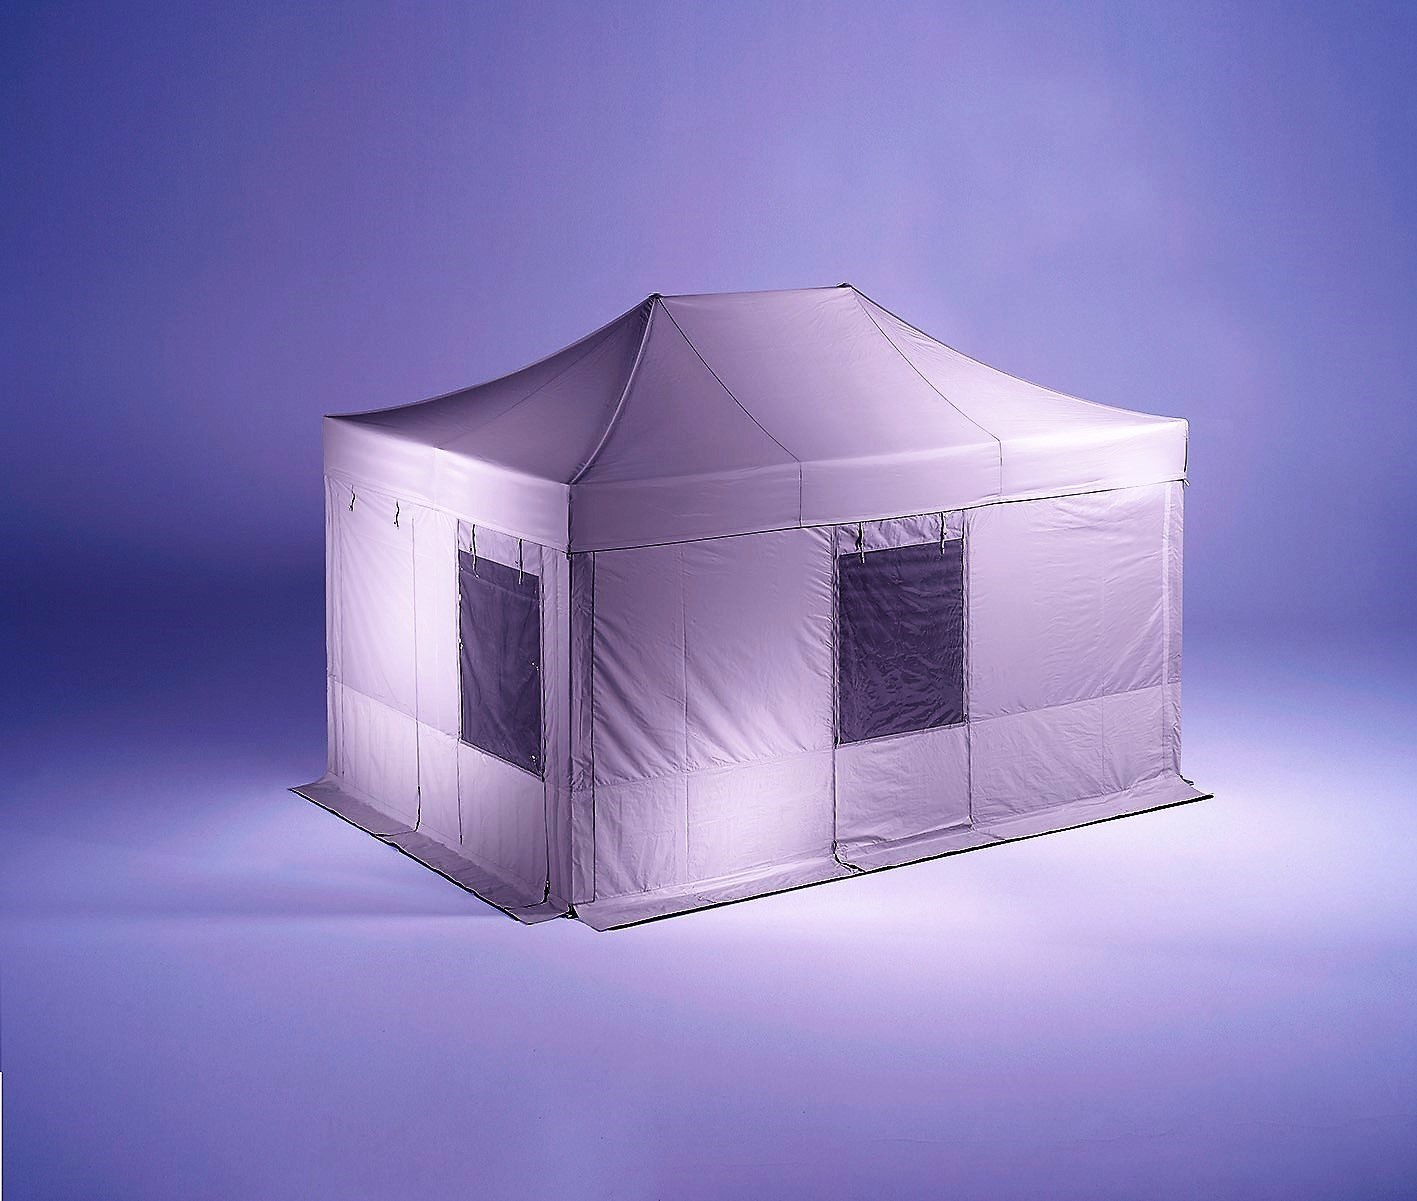 <p>Tents & Marquees – Folding Tents – Rescue Tent</p> <p> </p> <p>Special version of our Folding Tent, perfect as Command Centre or Medical Tent for rescue missions providing casualties protection from the weather and privacy in sensitive situations such as rescue operations, firefighting missions, police operations, as crime scene tents, medical tents during natural disasters such as earthquakes, tsunamis, triage tents outside hospitals and medical centres during pandemics such as COVID-19 etc.</p> <p> </p> <p>Includes special side walls with integrated doors and windows, insect screen, night closures and anti-slip floor.</p>